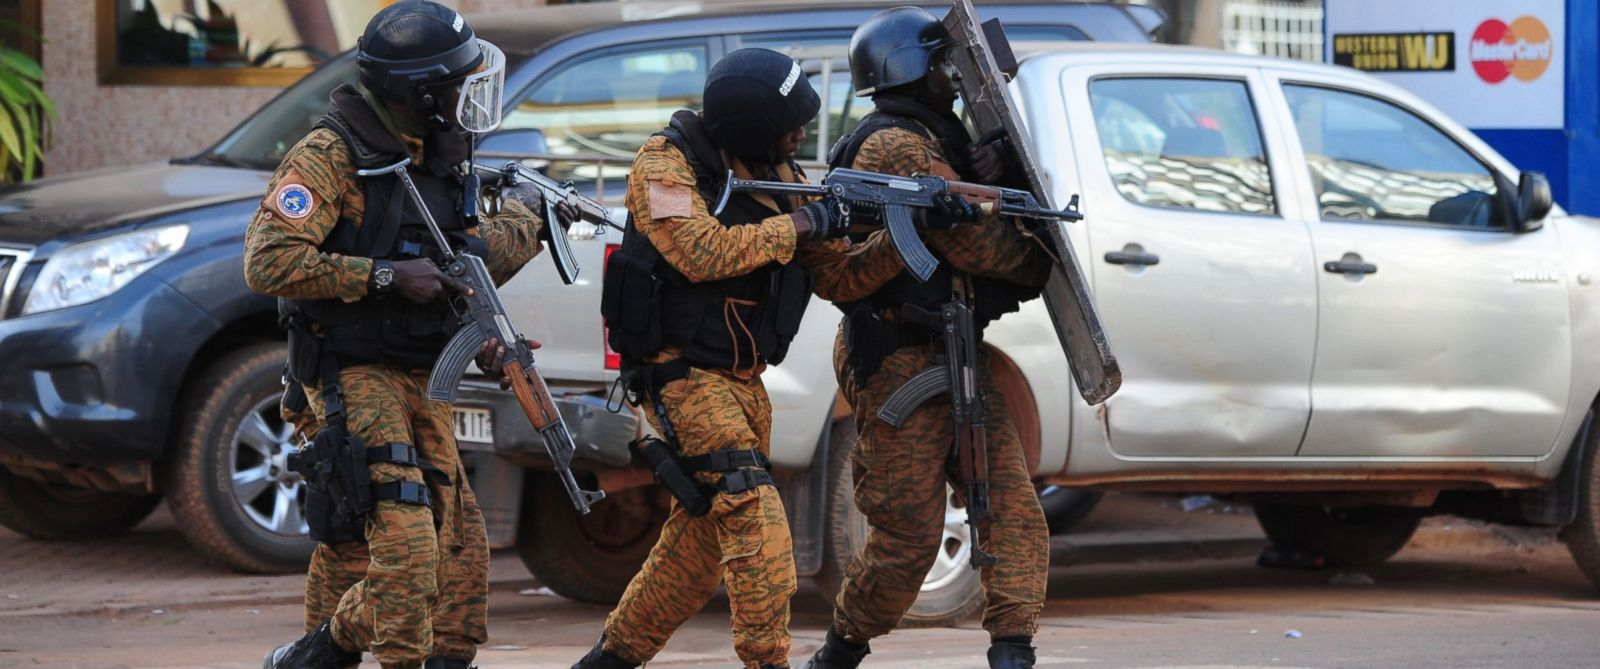 PHOTO: Special police forces are seen during search operations following an attack by Al-Qaeda linked gunmen on January 16, 2016 in Ouagadougou.